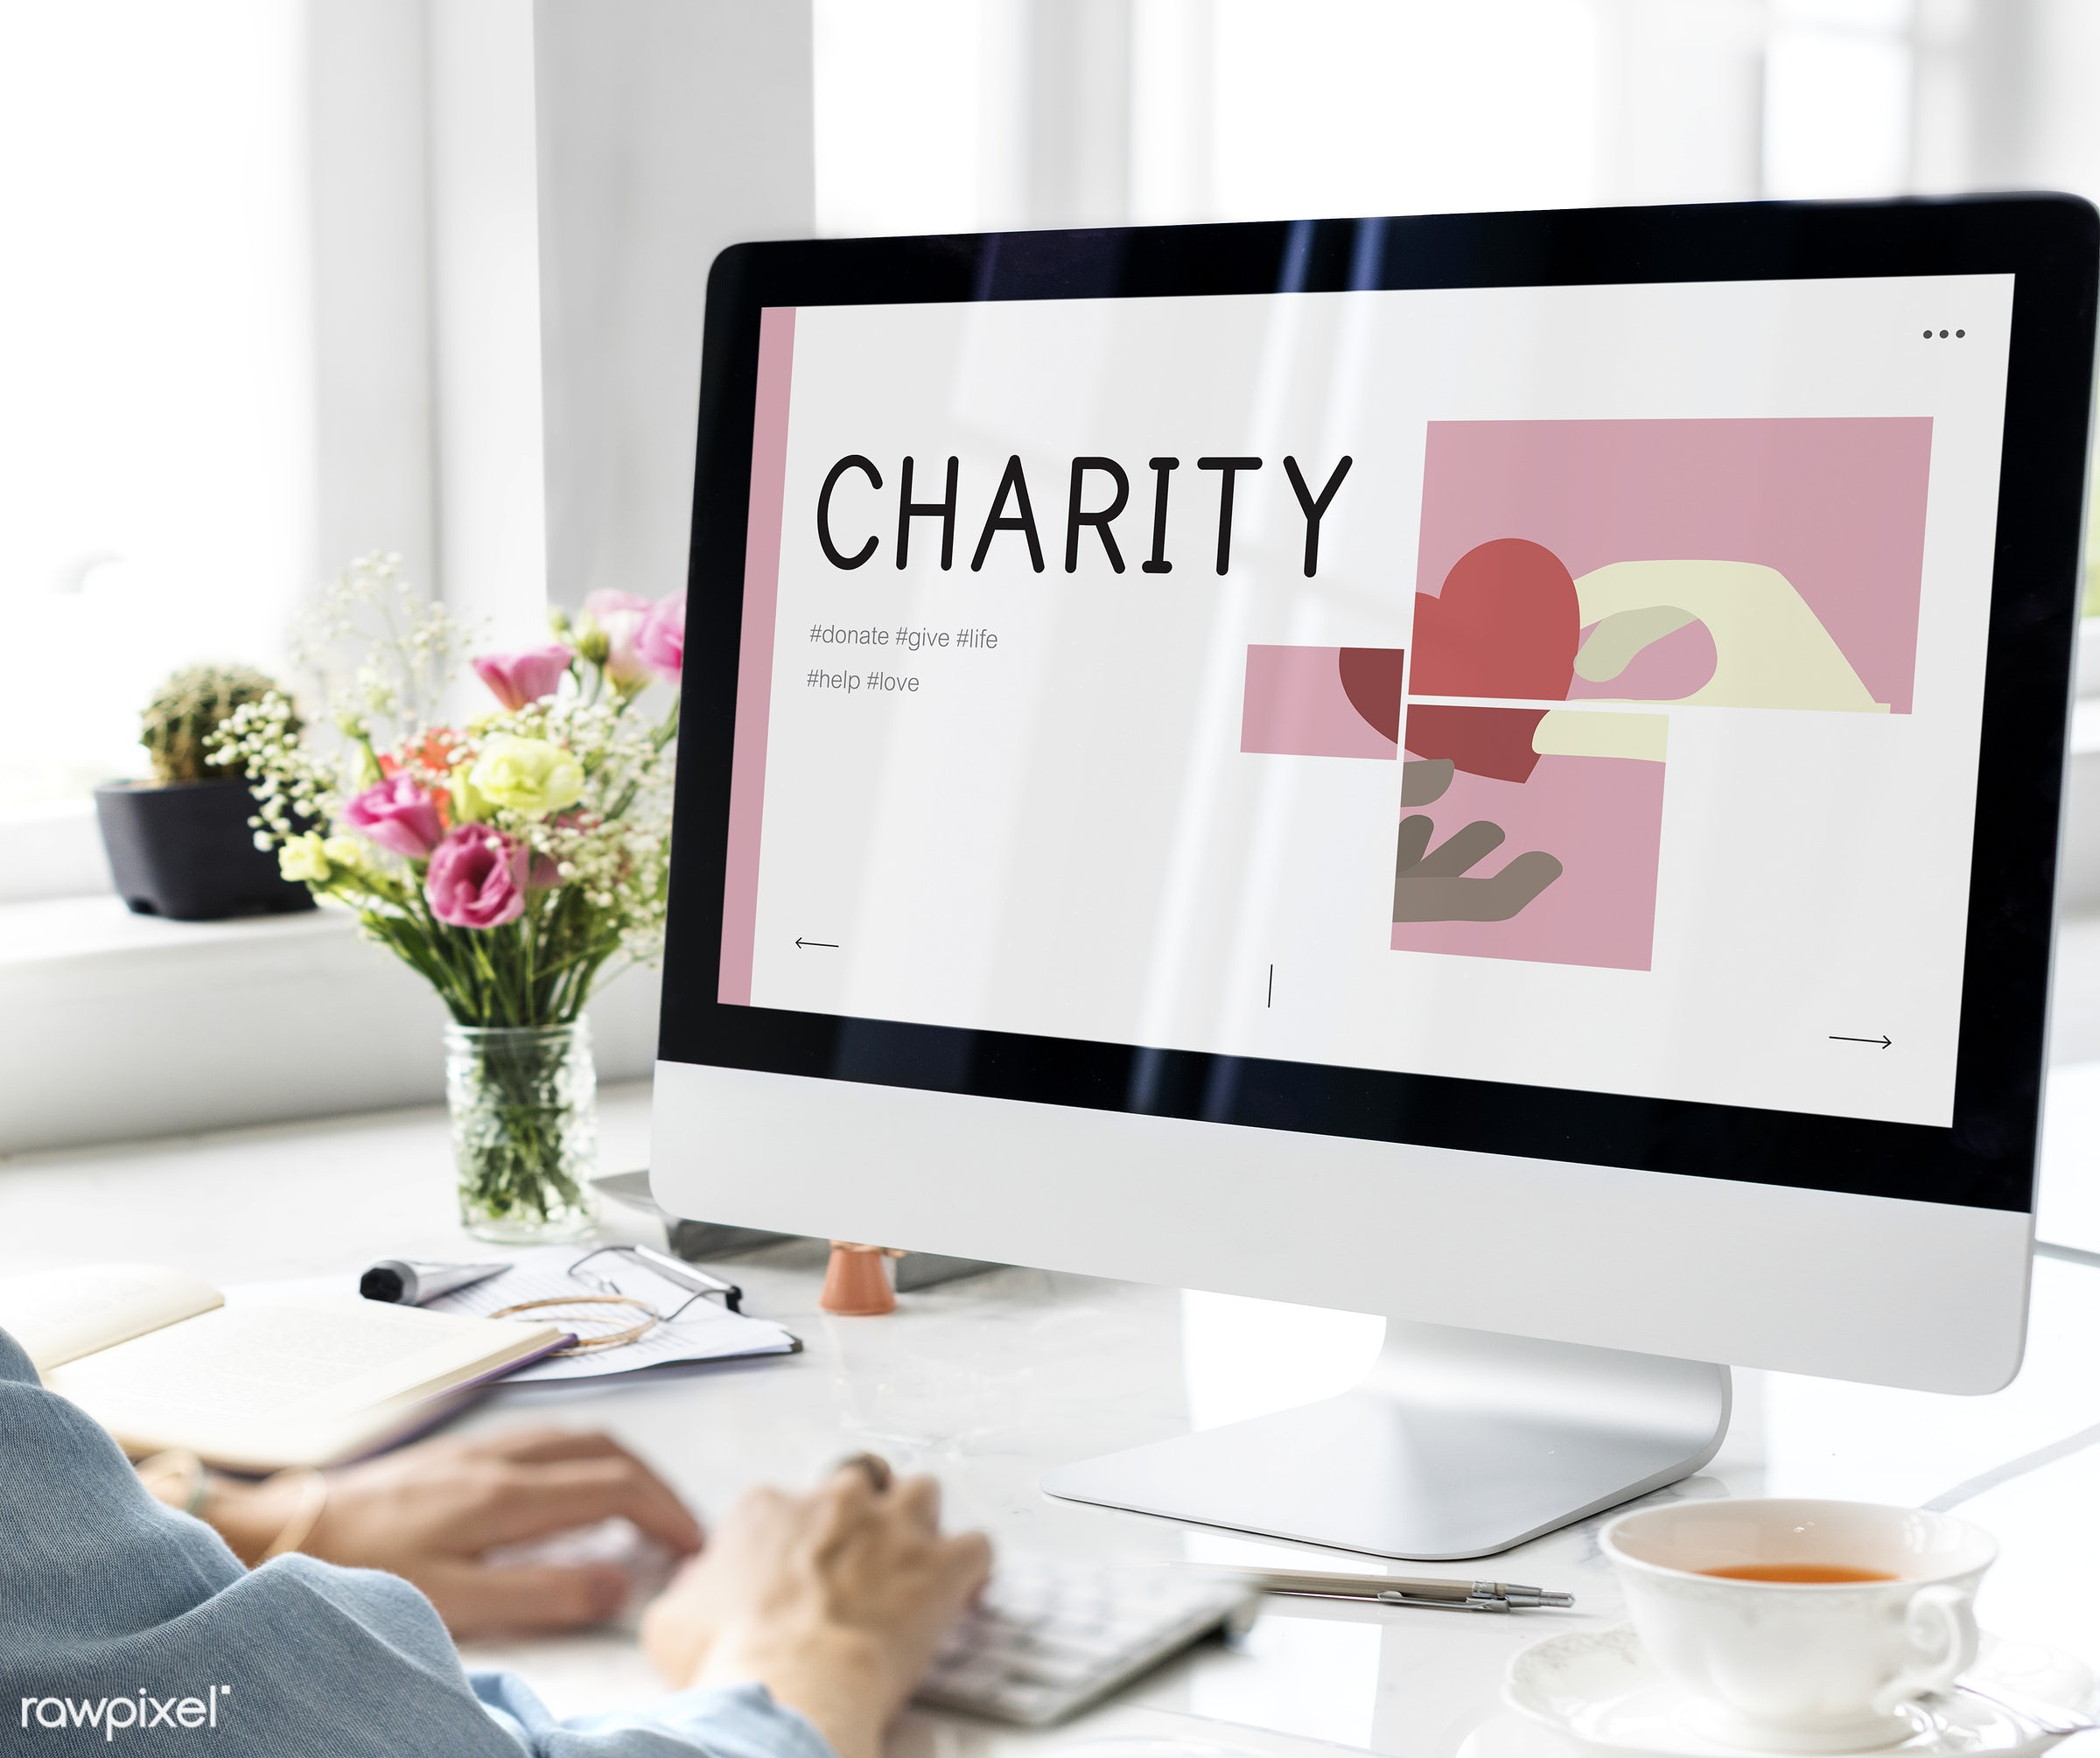 charity, communication, computer, connection, design, device, digital, donate, donation, give, internet, leisure, media,...